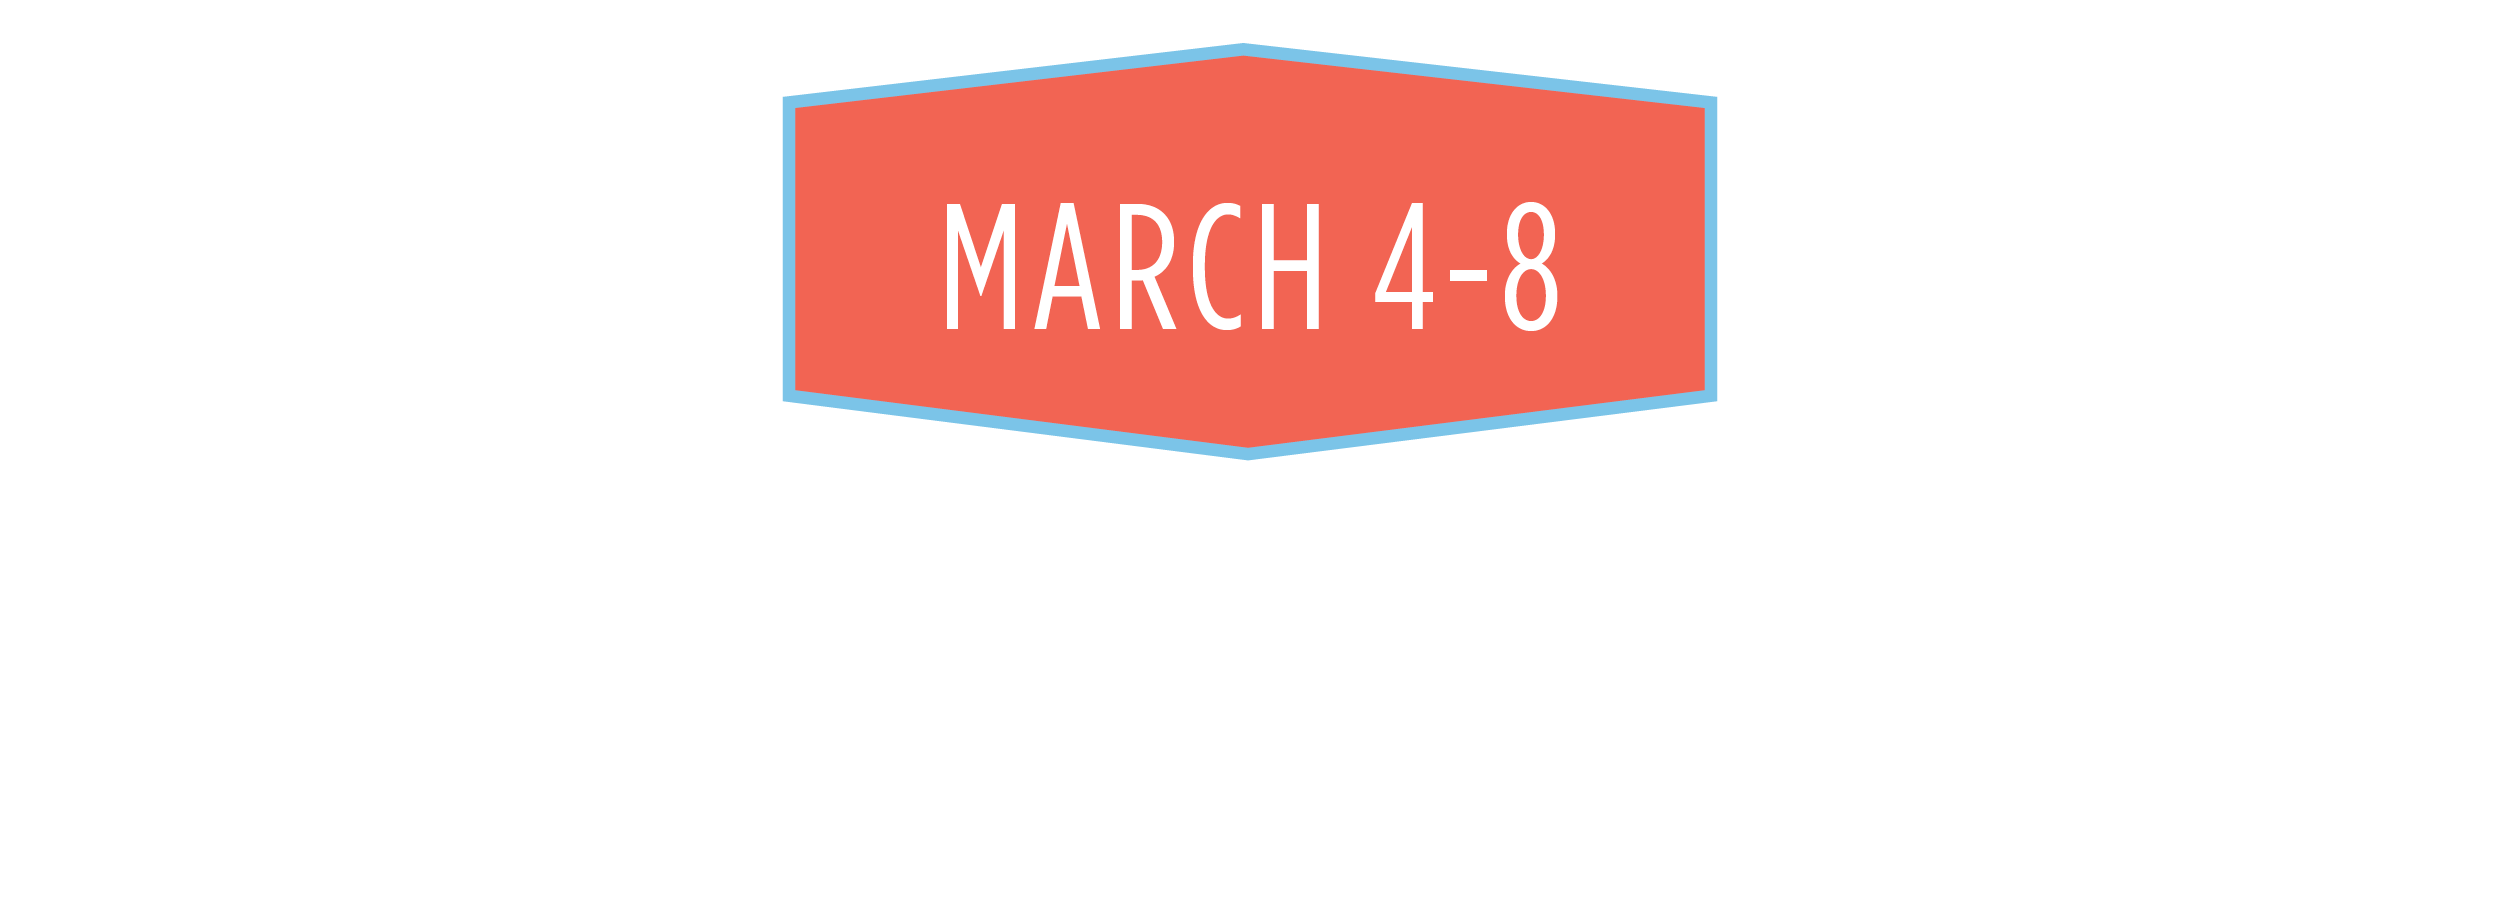 March 4-8 Join for $1 & get 50% off your first month of training